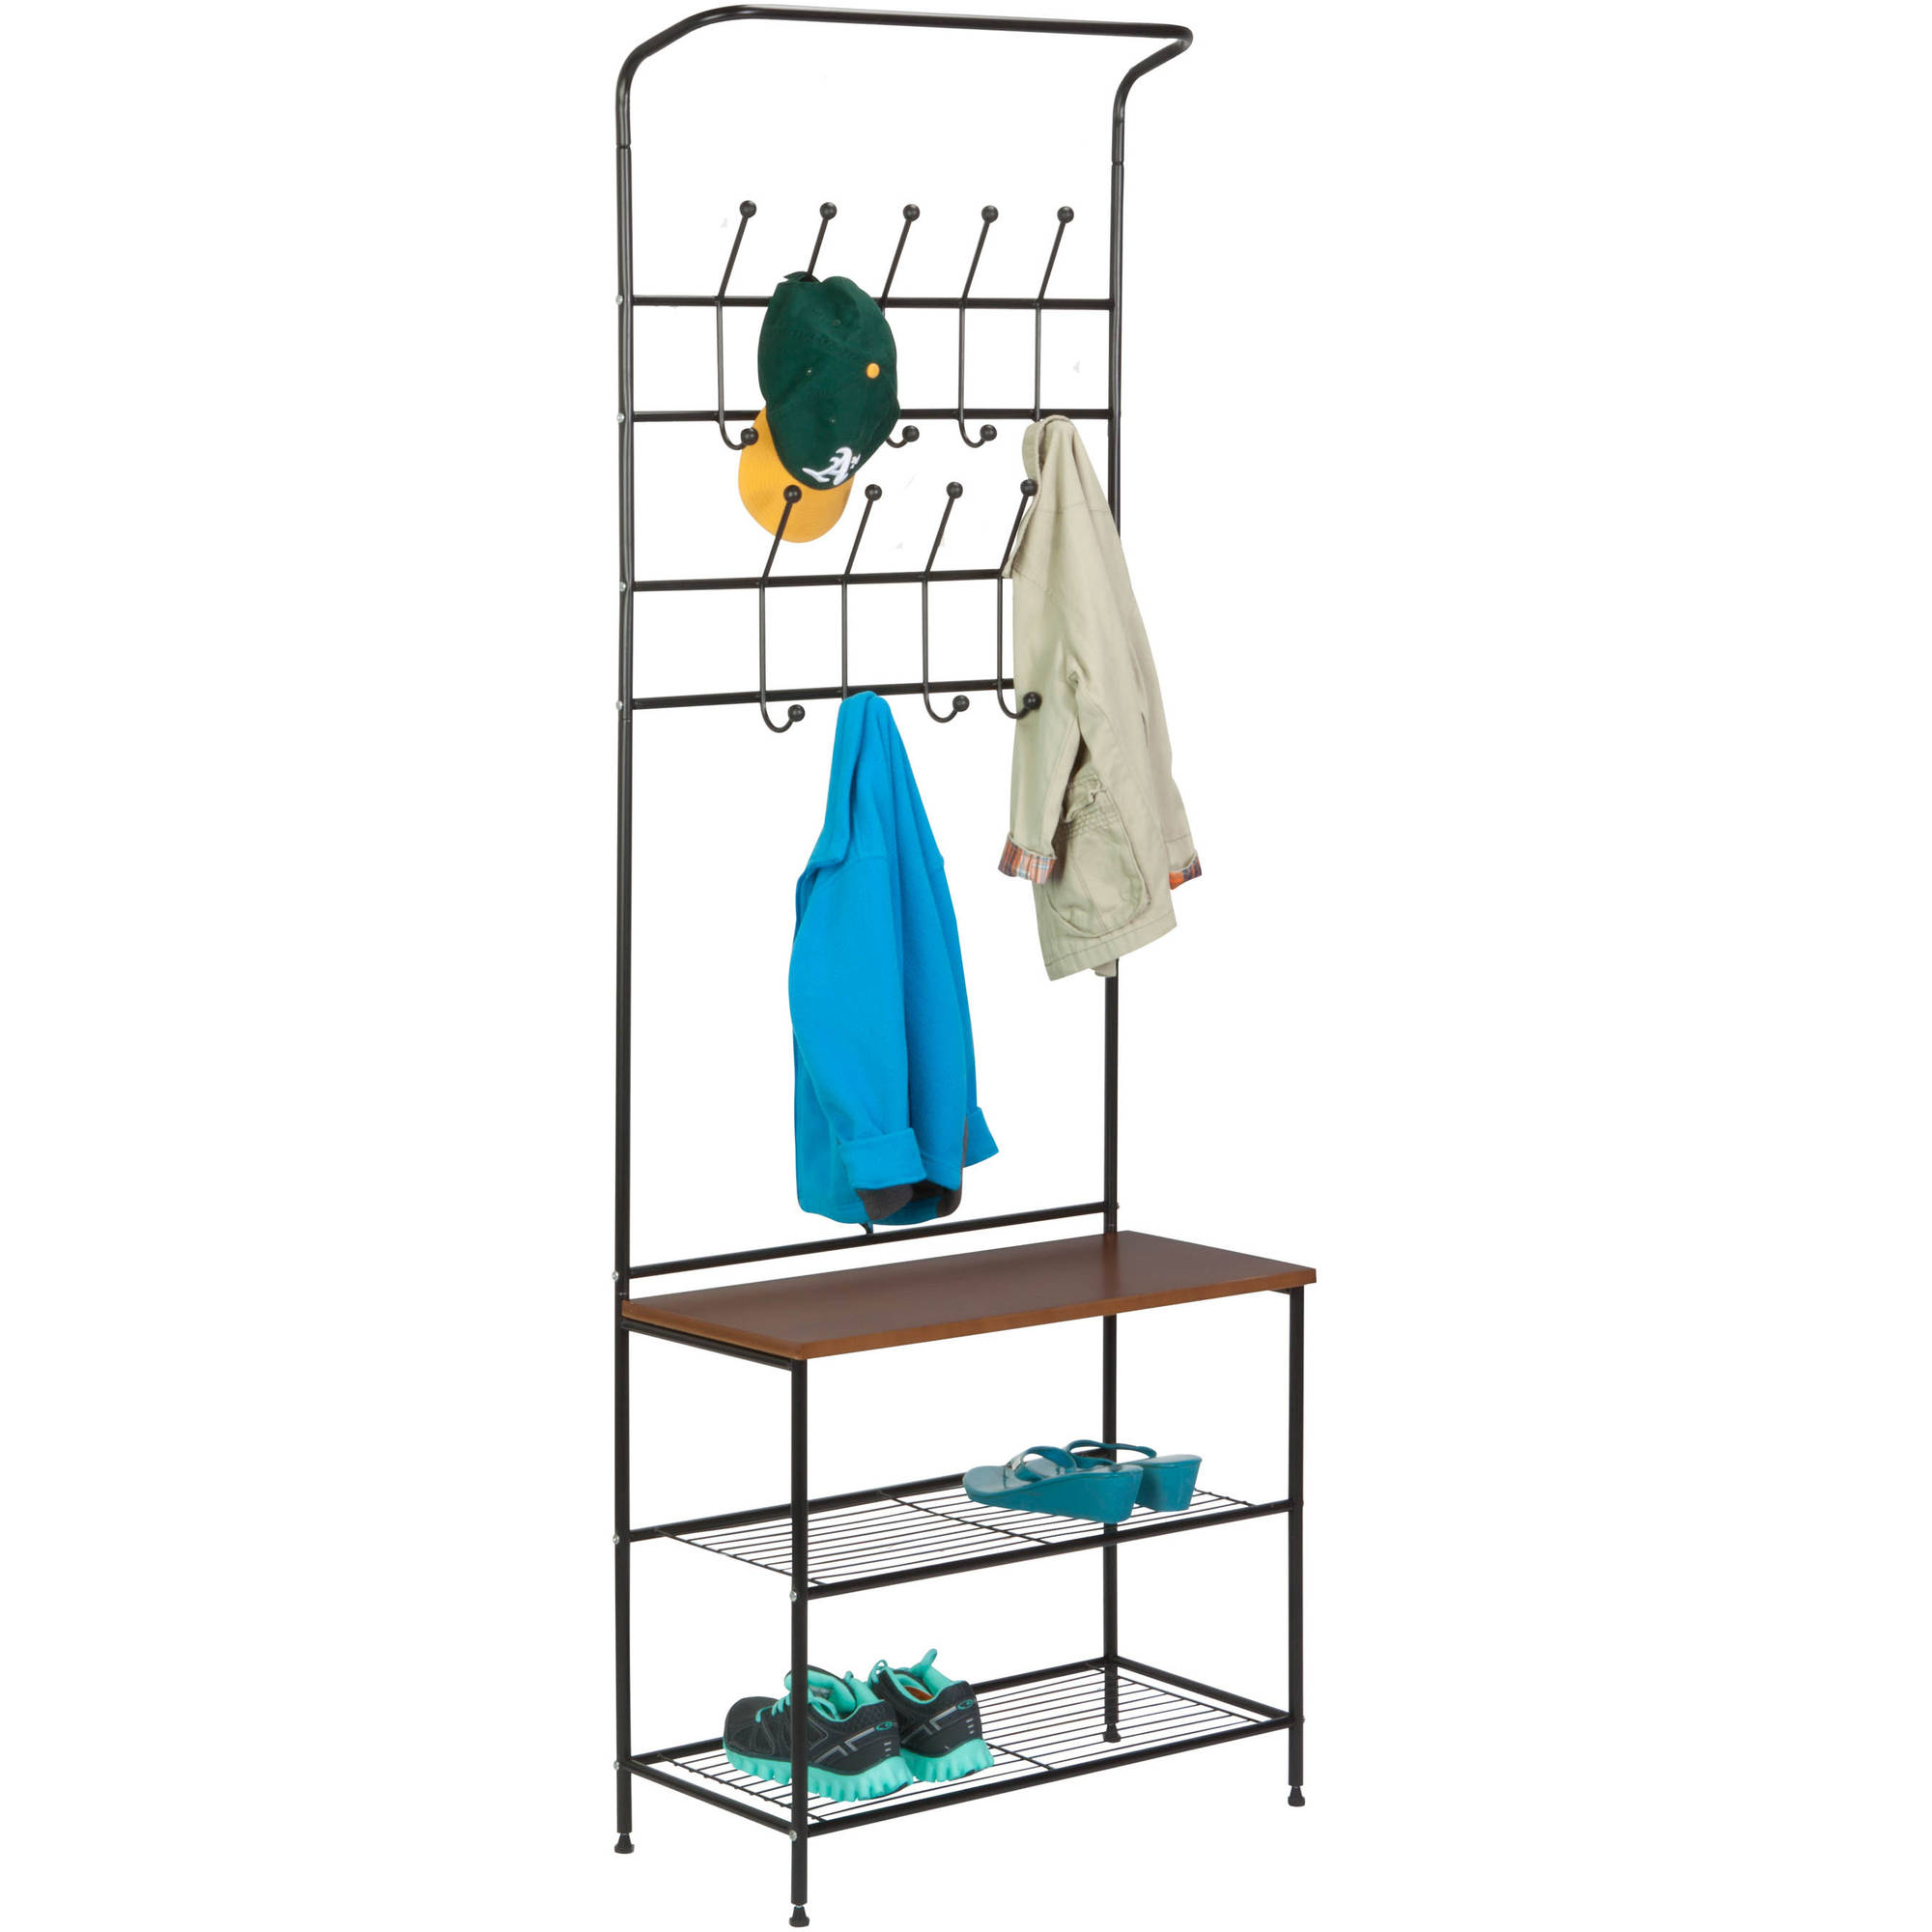 Honey Can Do Entryway Storage Valet With Coat Hanger And Shelves, Black